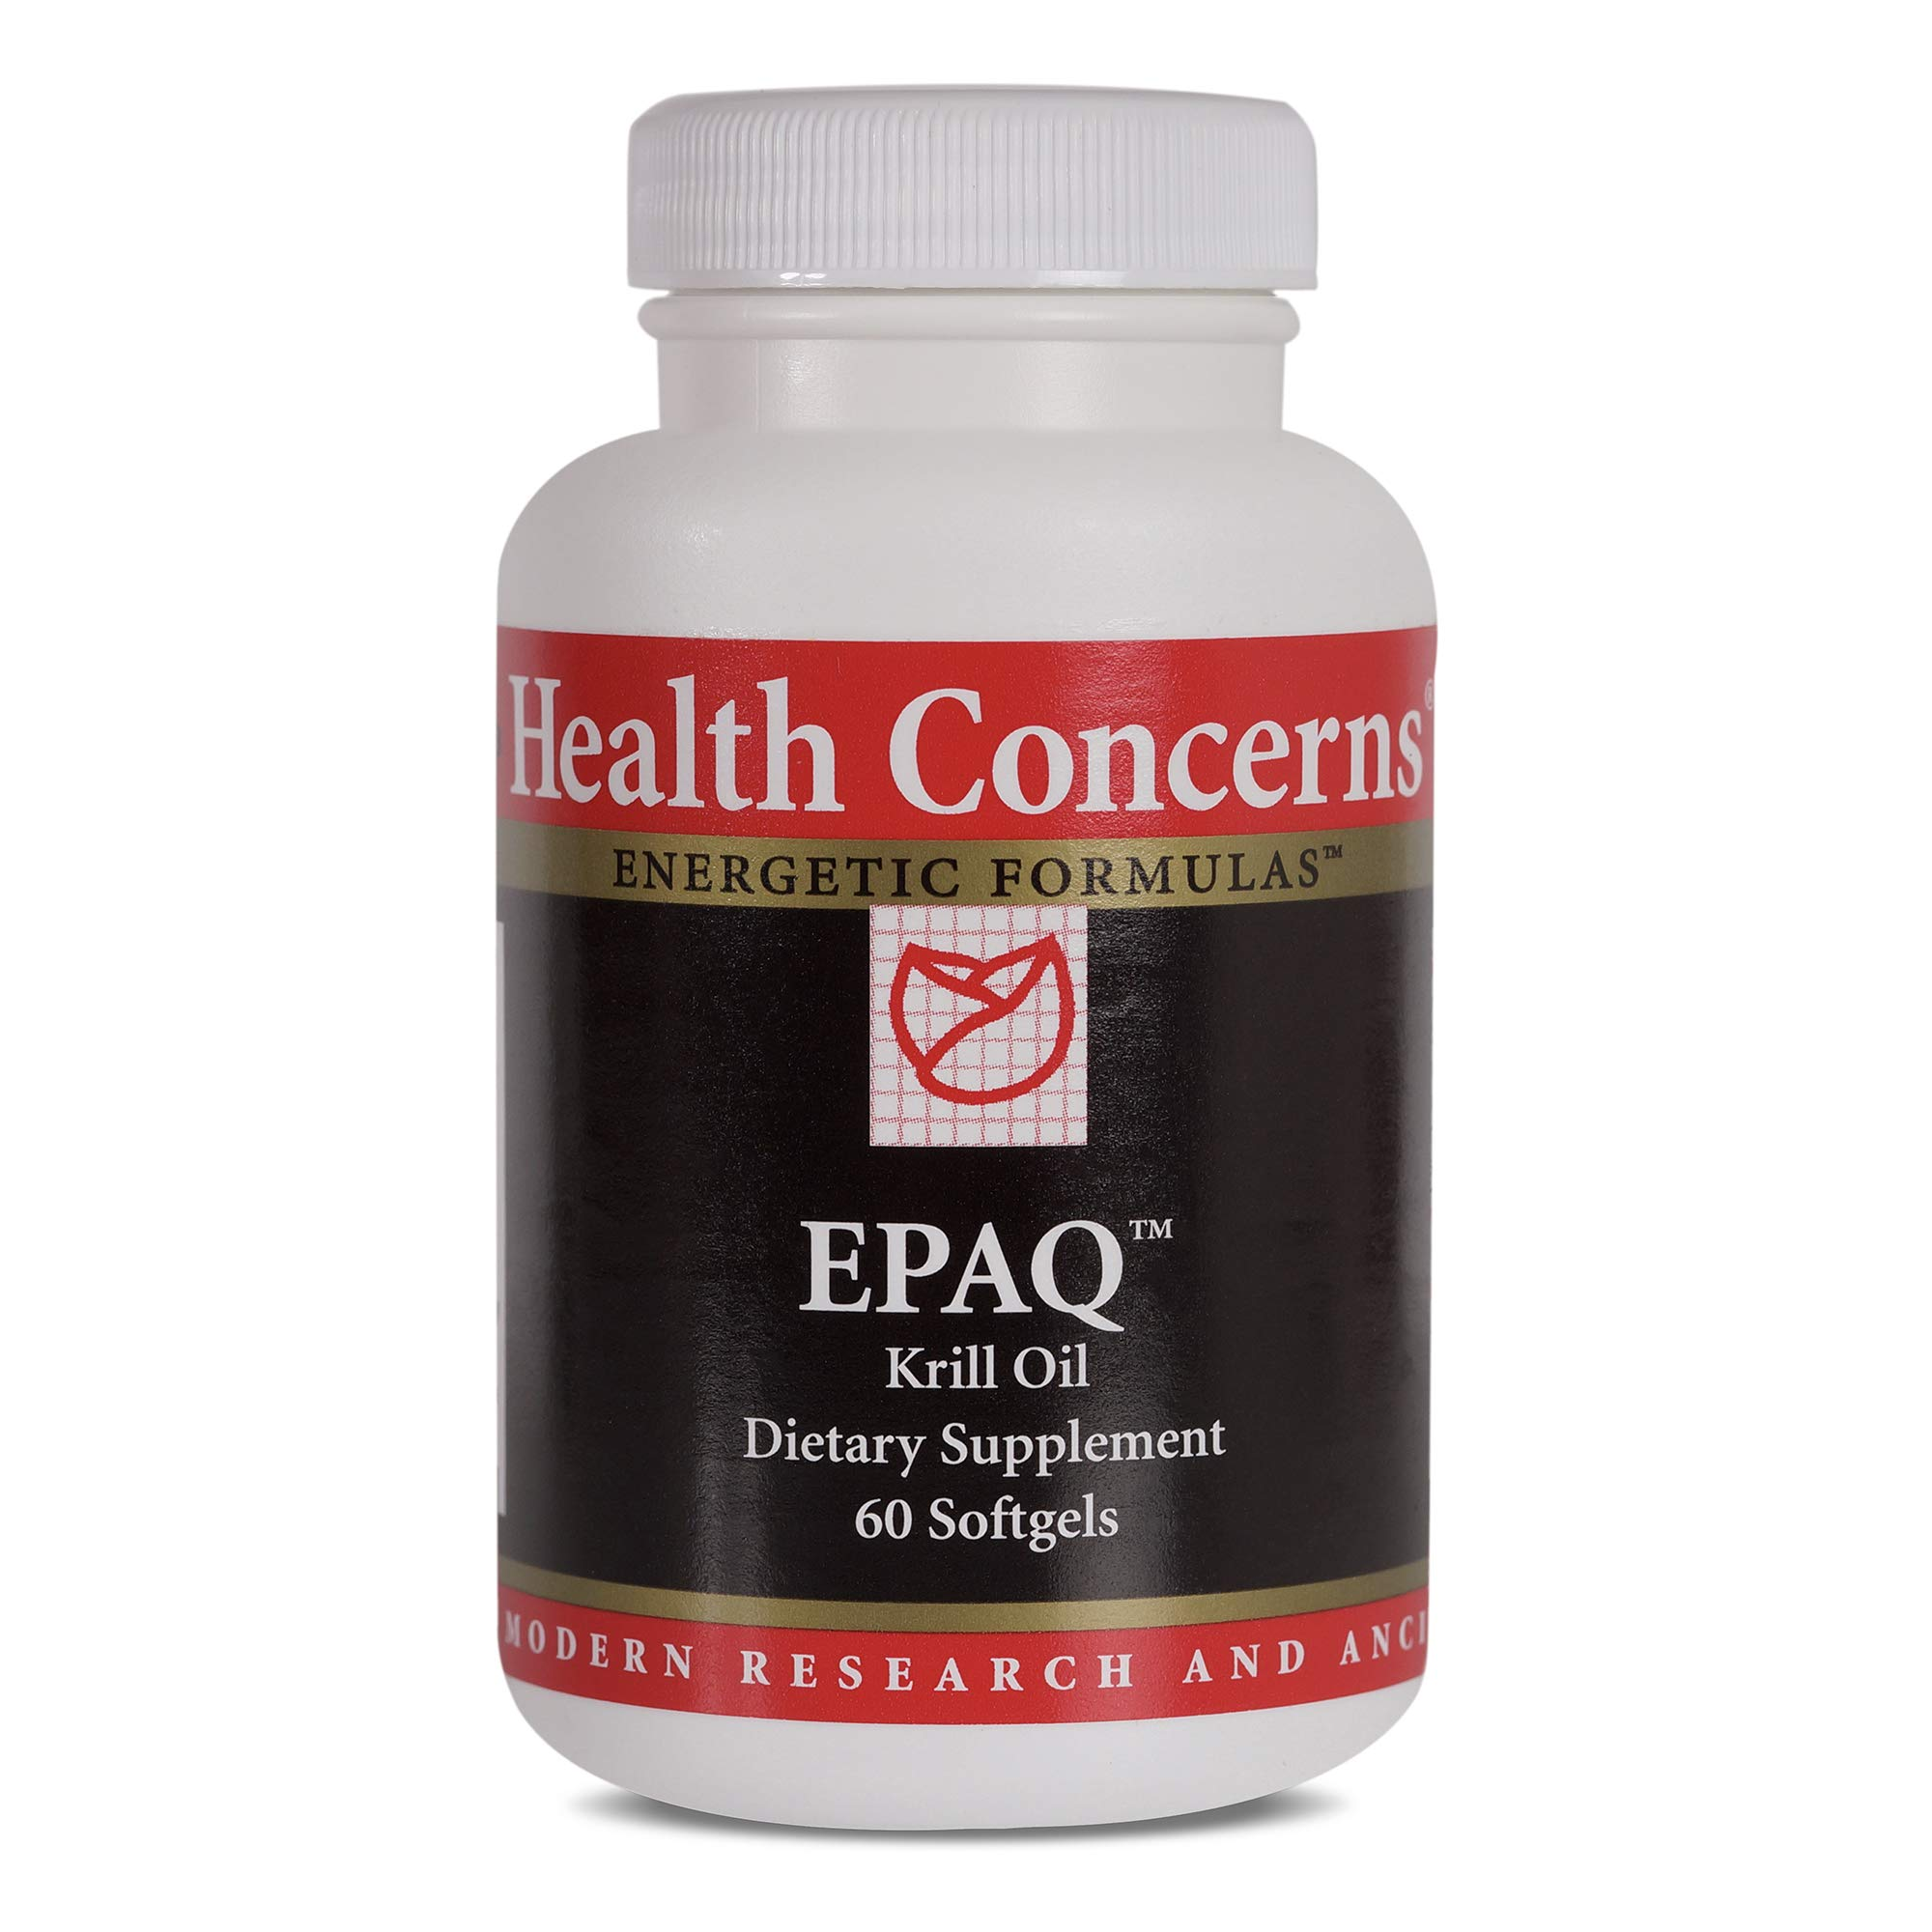 Health Concerns - EPAQ - Krill Oil Chinese Dietary Supplement - Anti-Inflammation Support - with Krill Oil - 60 Softgels per Bottle by Health Concerns